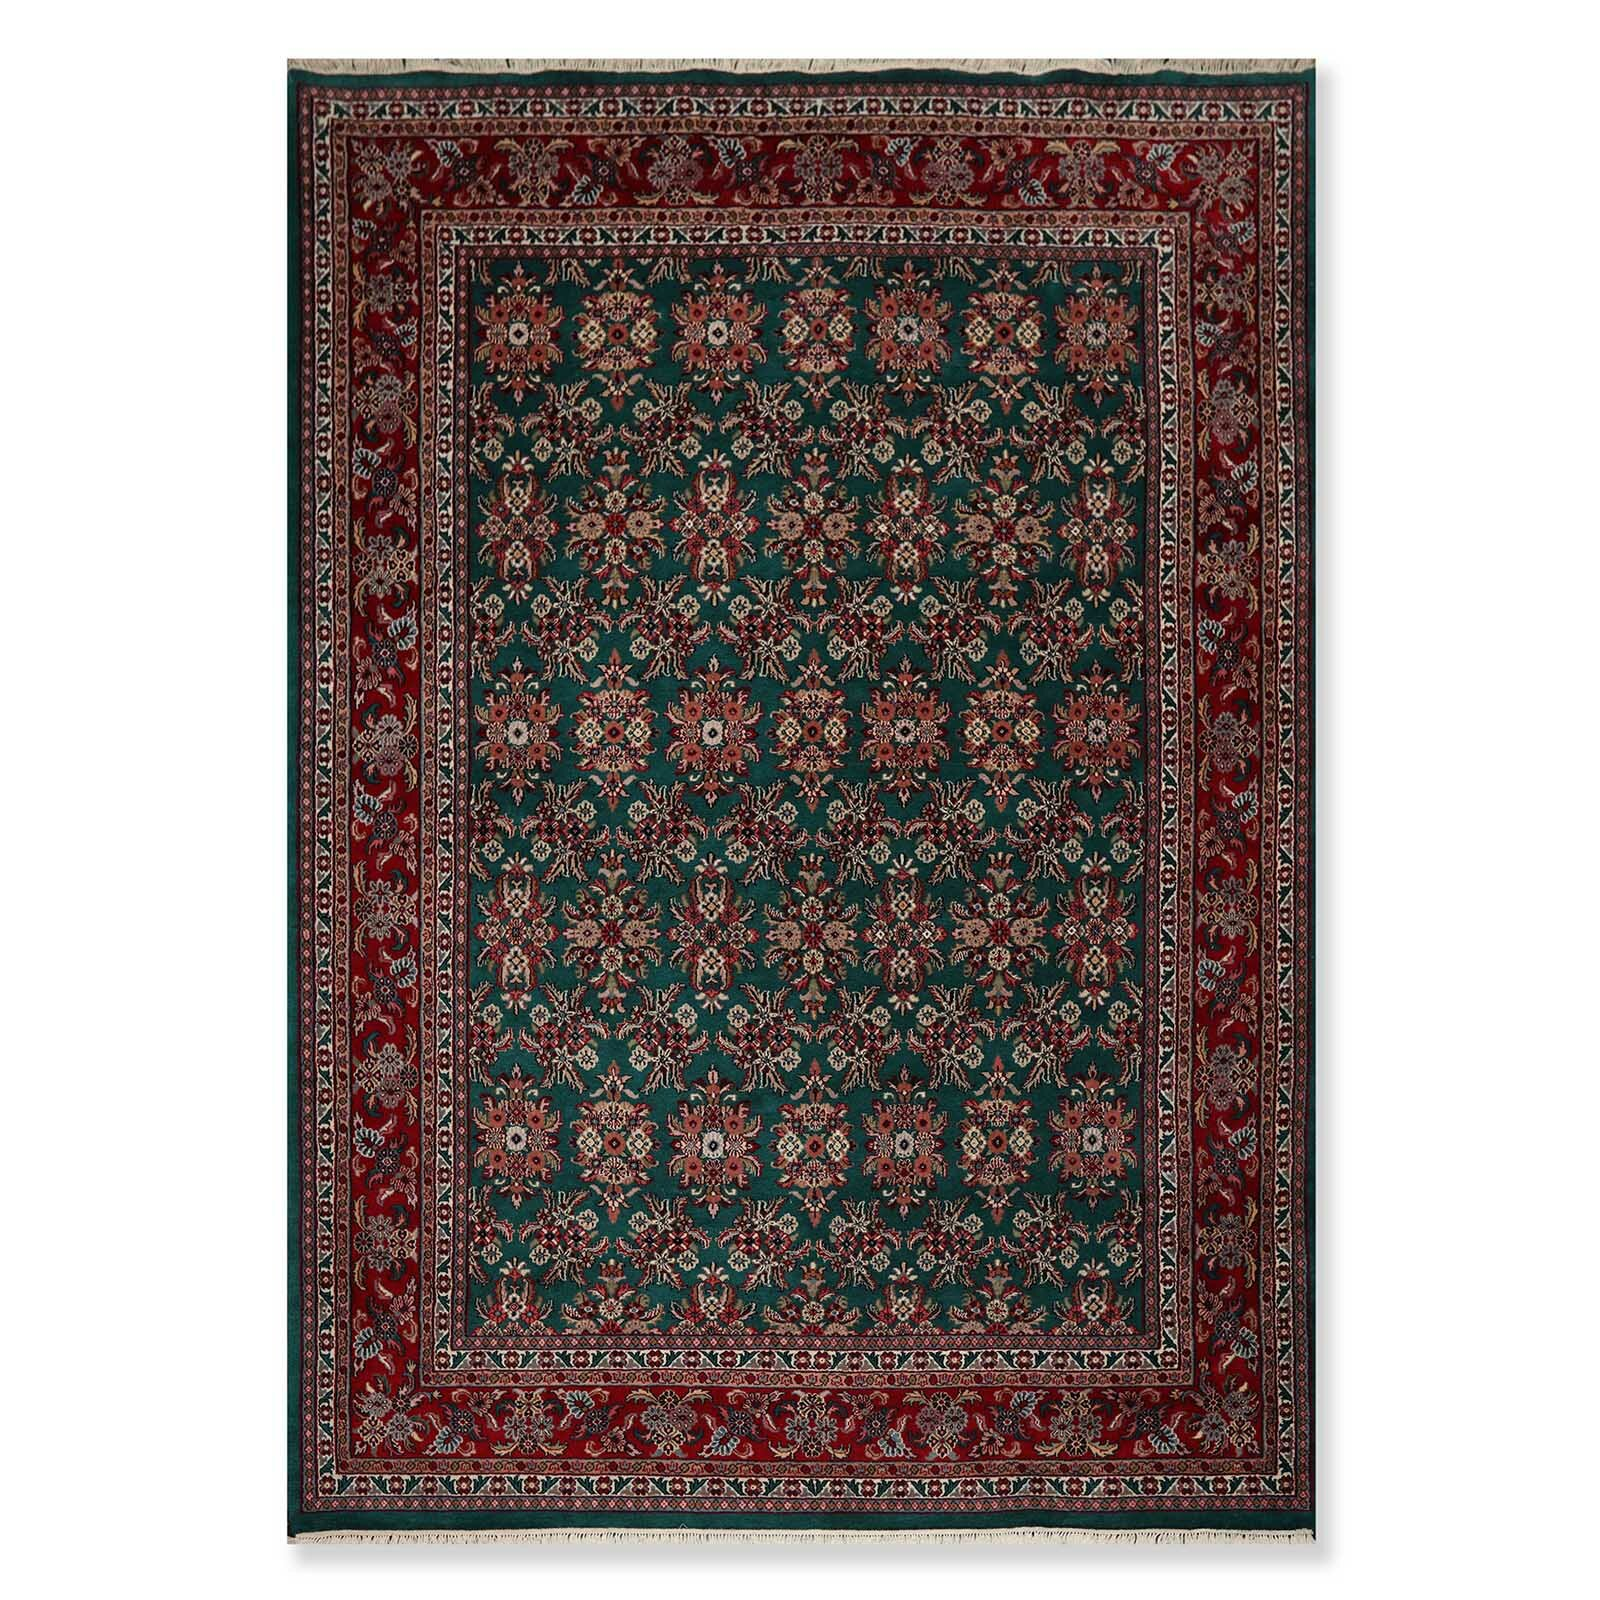 World menagerie one of a kind margret hand knotted 88 x 126 wool burgundy area rug wayfair